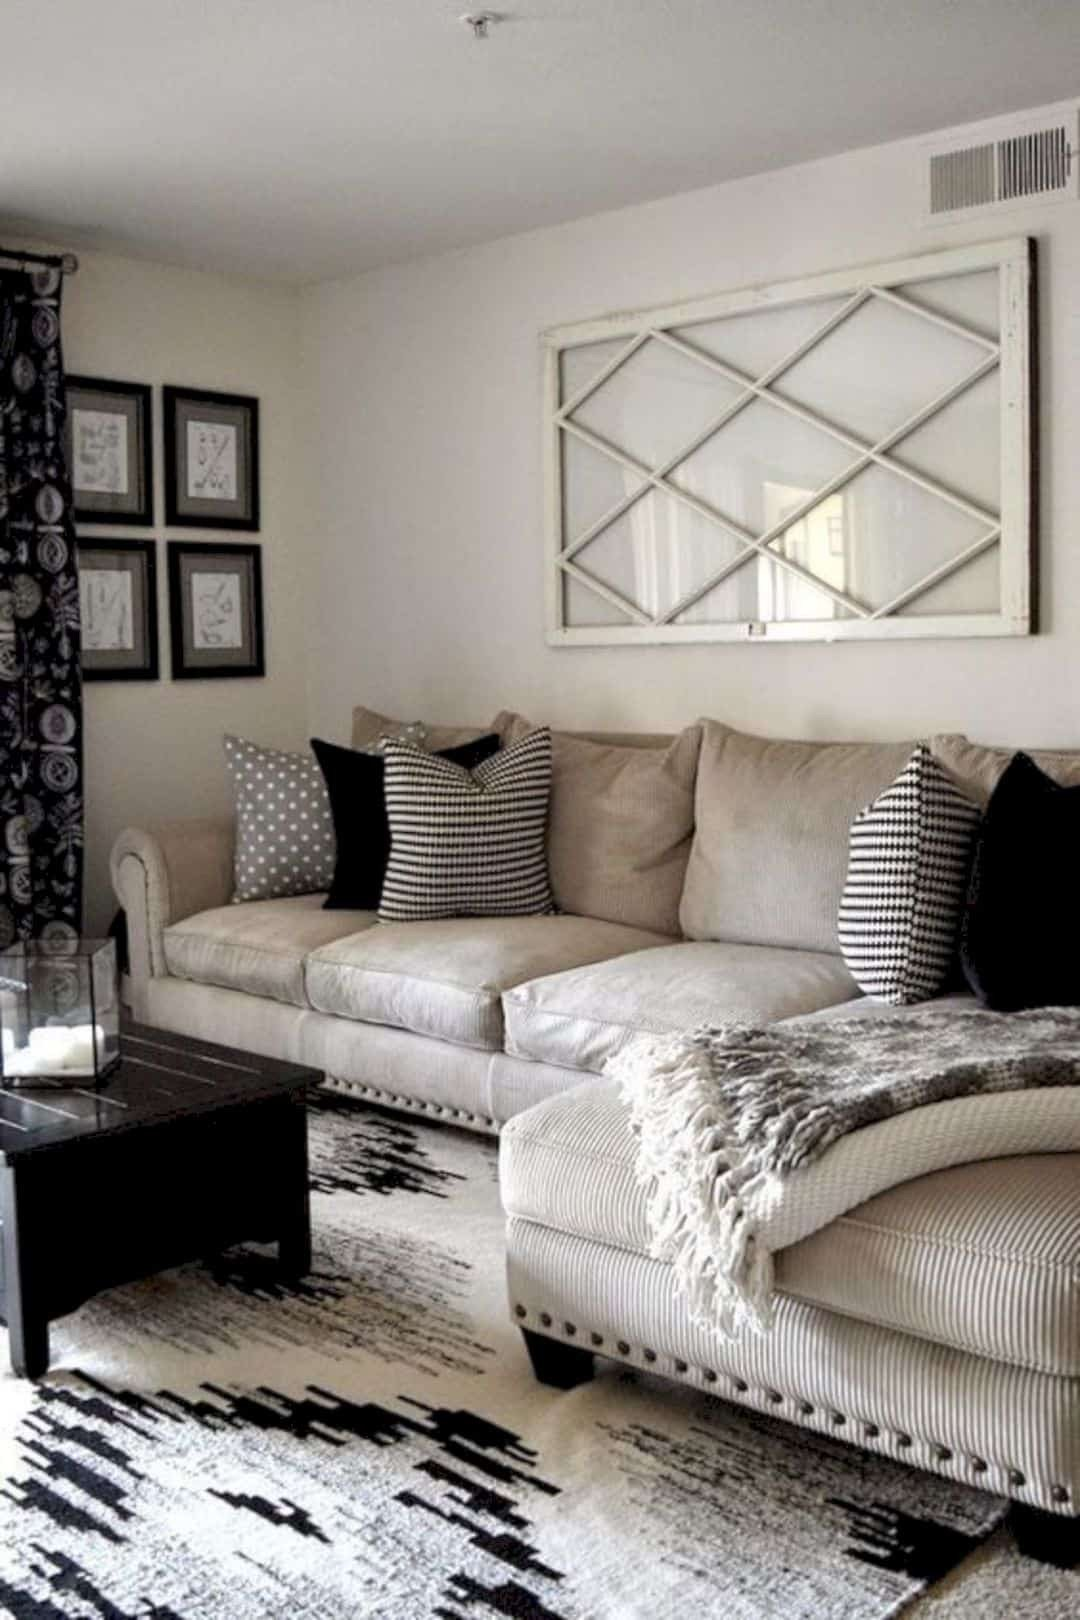 Living Room Wall Decorating Ideas Best Of 16 Magnificent Living Room Walls Decorating Ideas